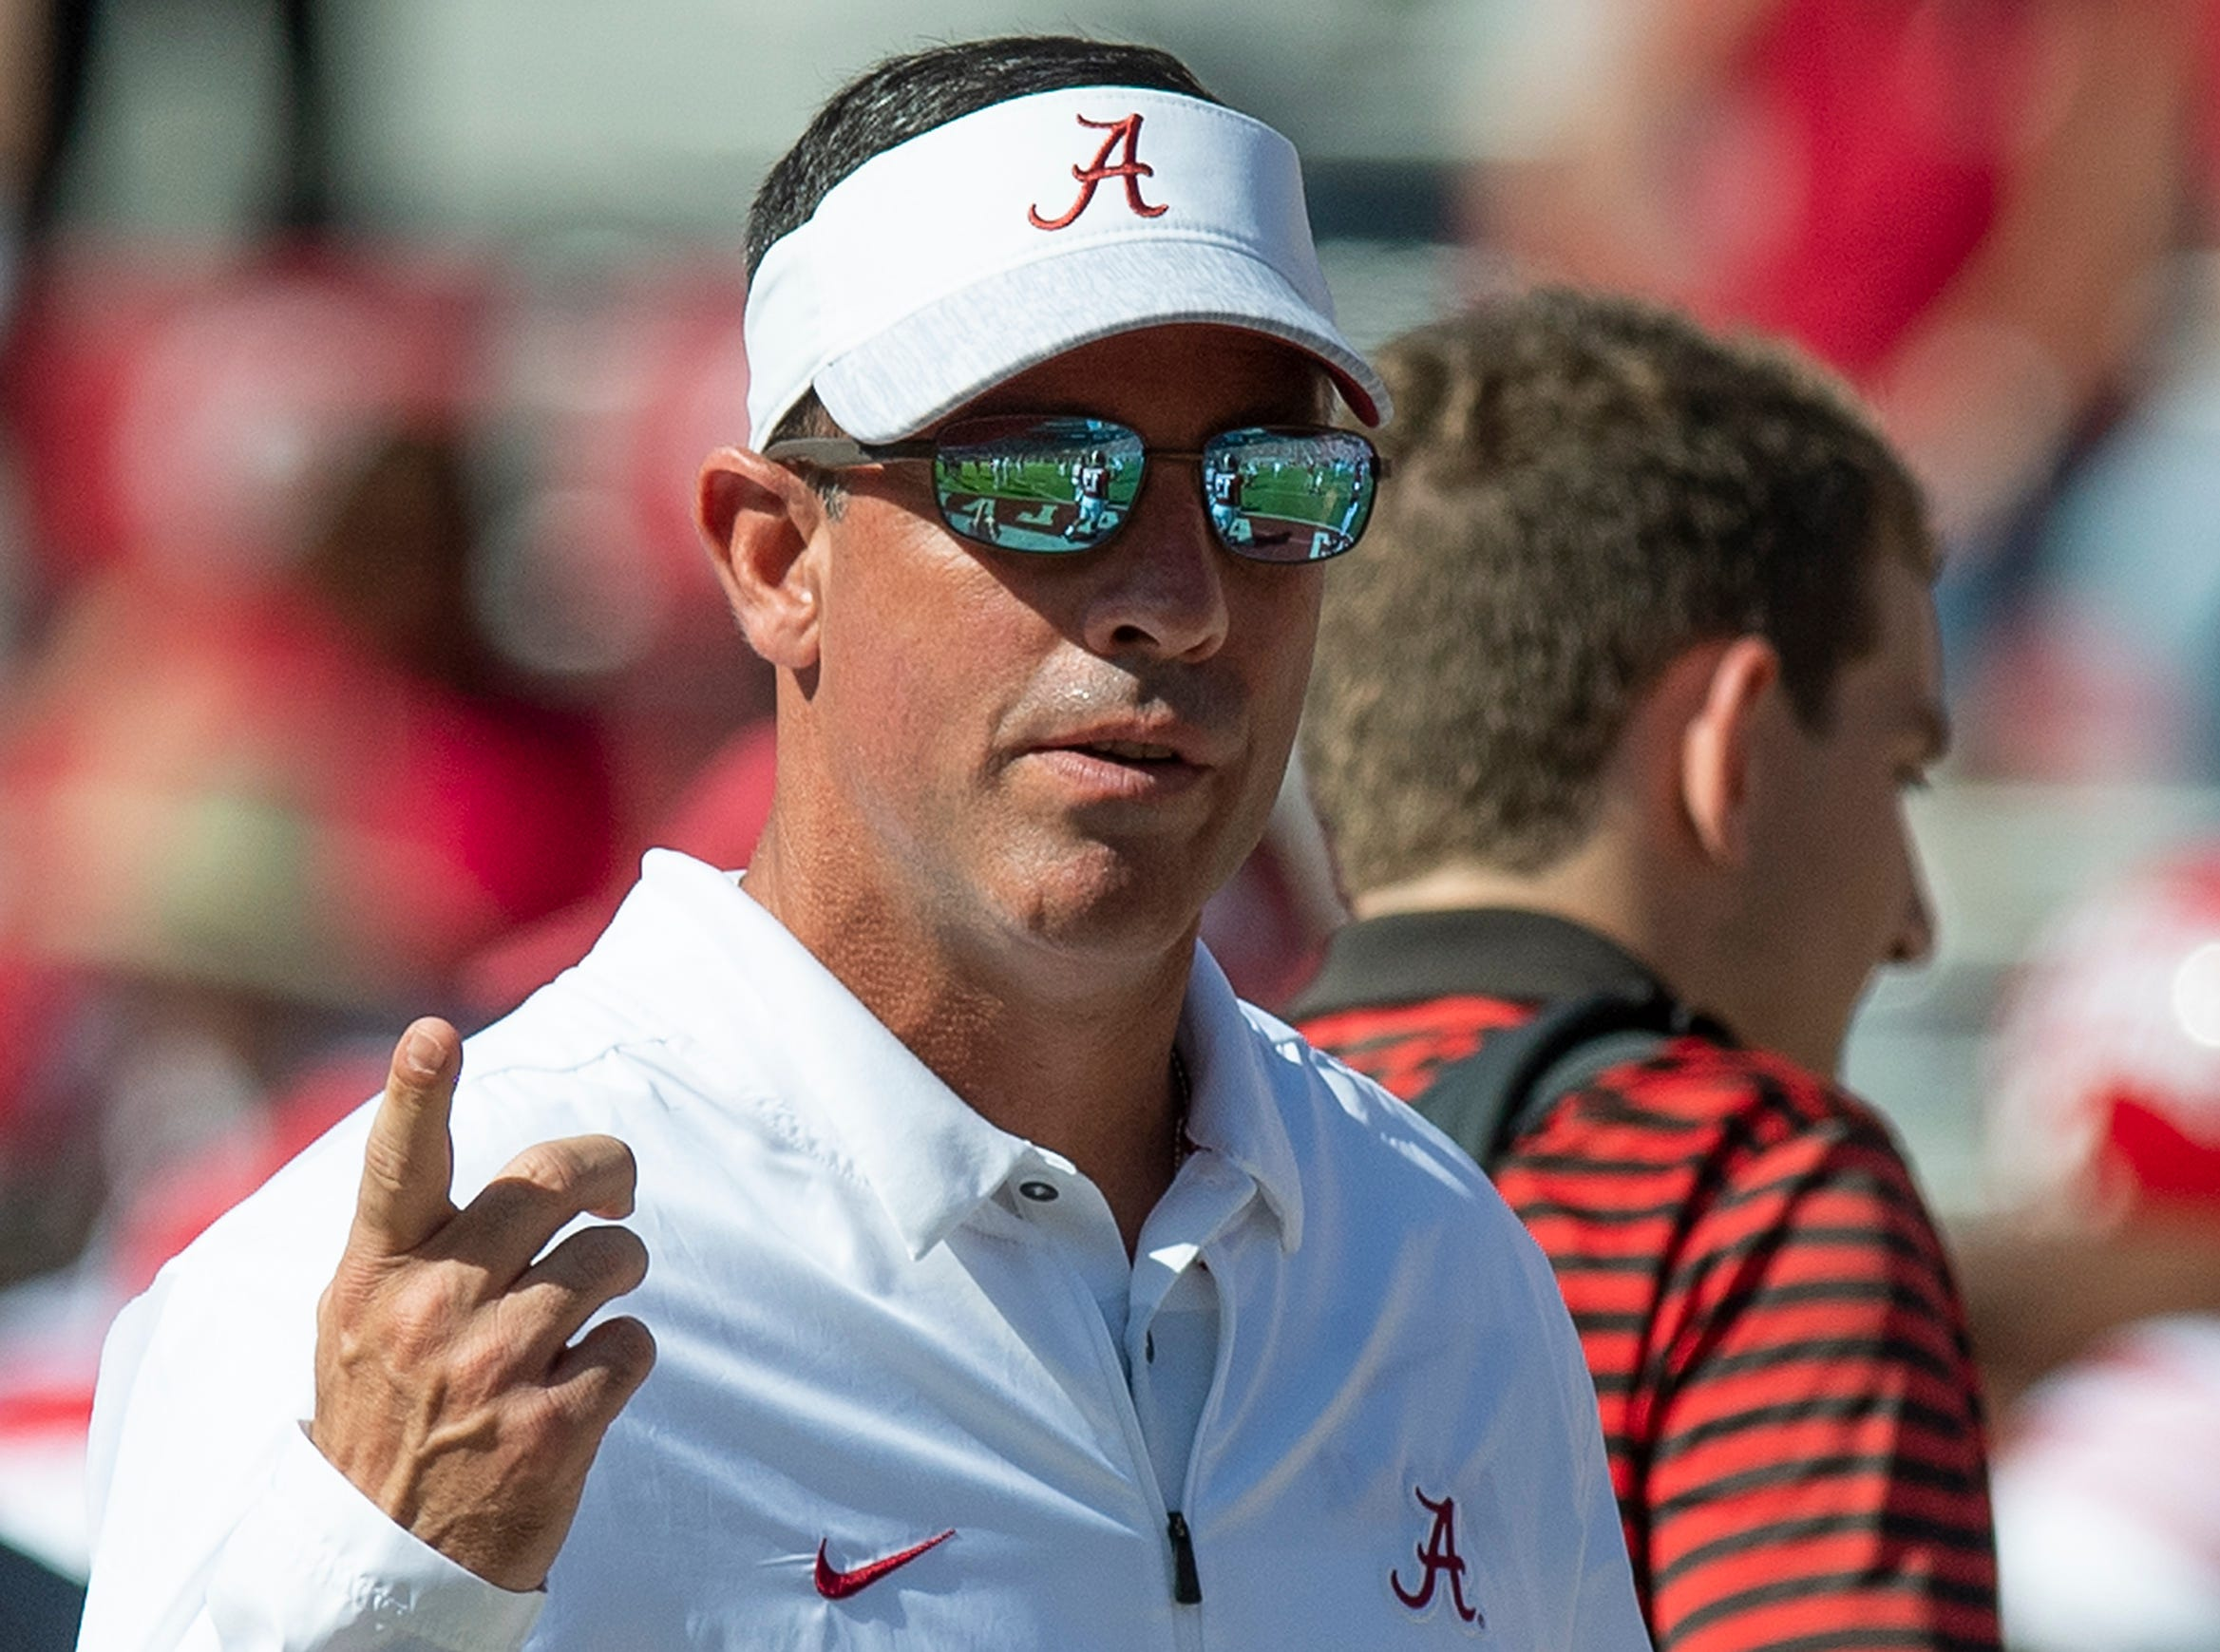 Alabama quarterbacks coach Dan Enos before the Alabama vs. Louisiana game in Tuscaloosa, Ala., on Saturday September 29, 2018.